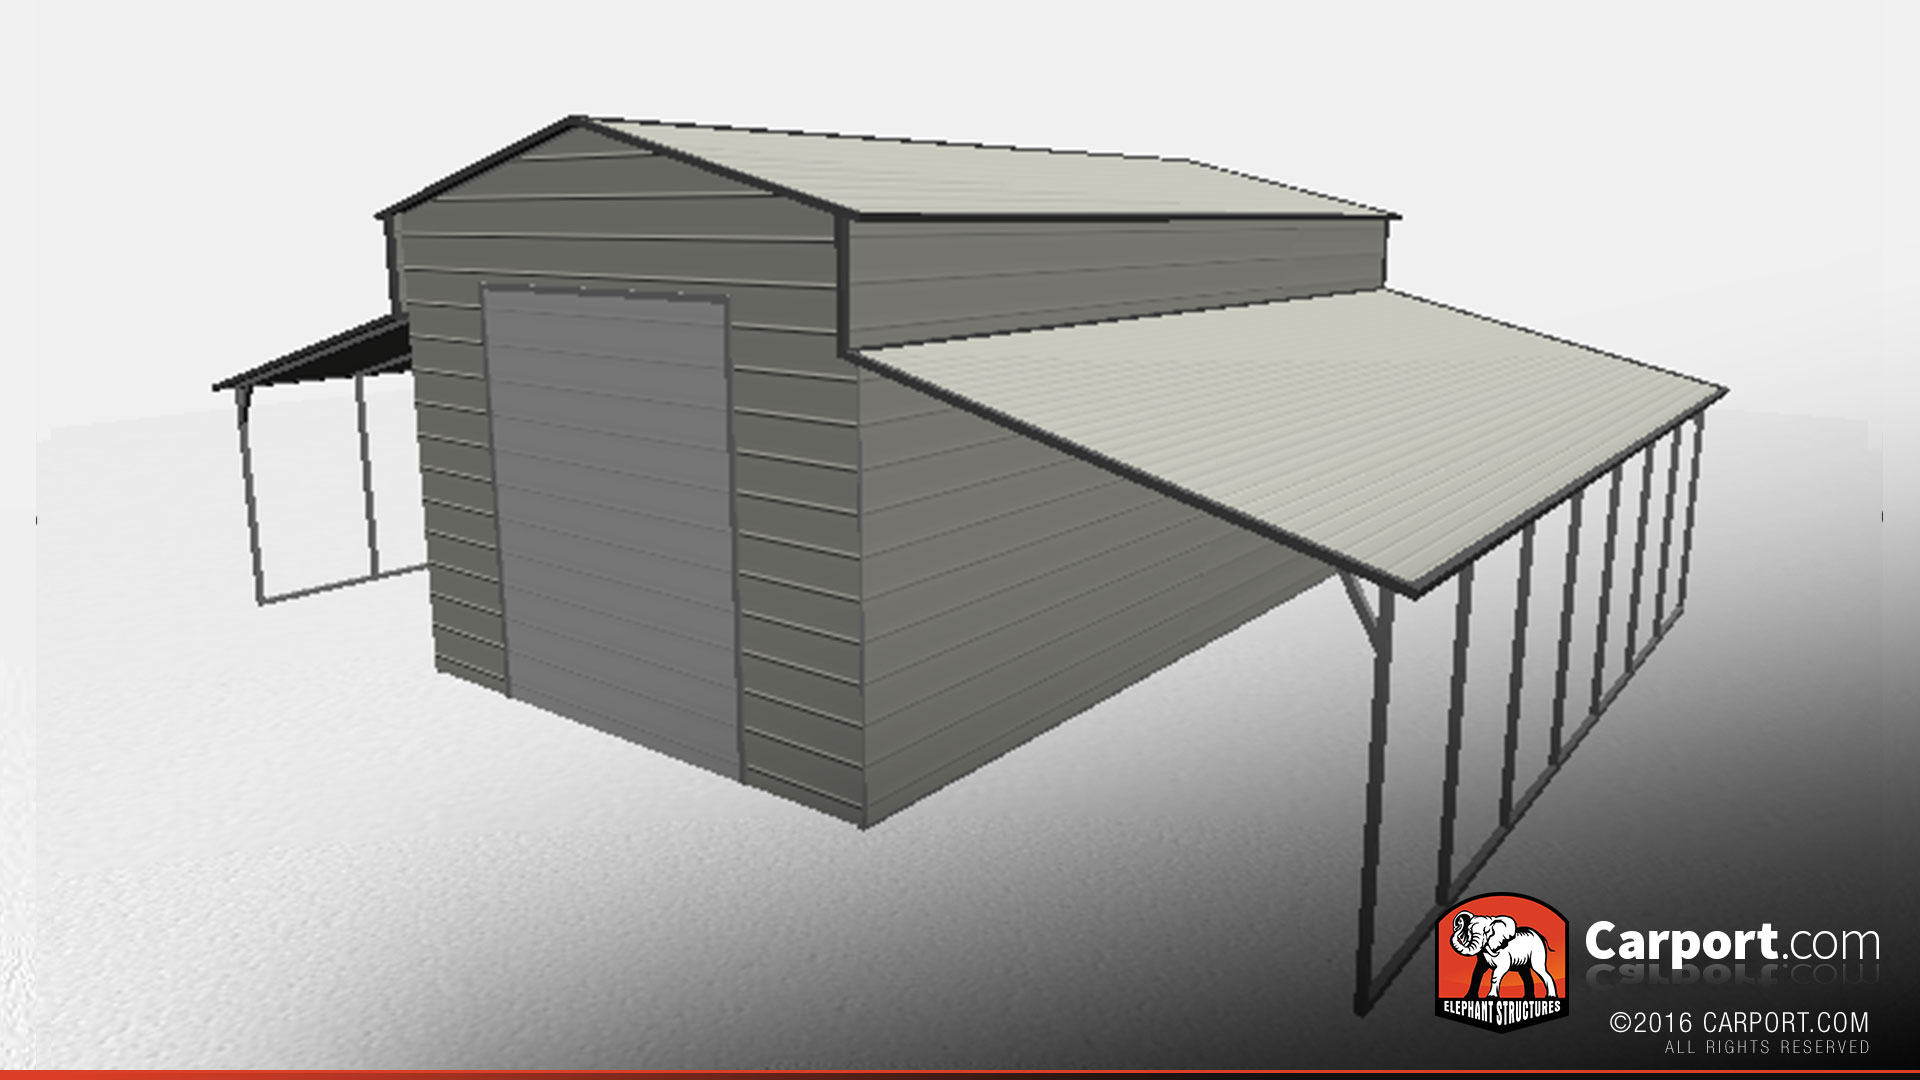 Top Quality Ridgeline Style Metal Barn Garage Carport